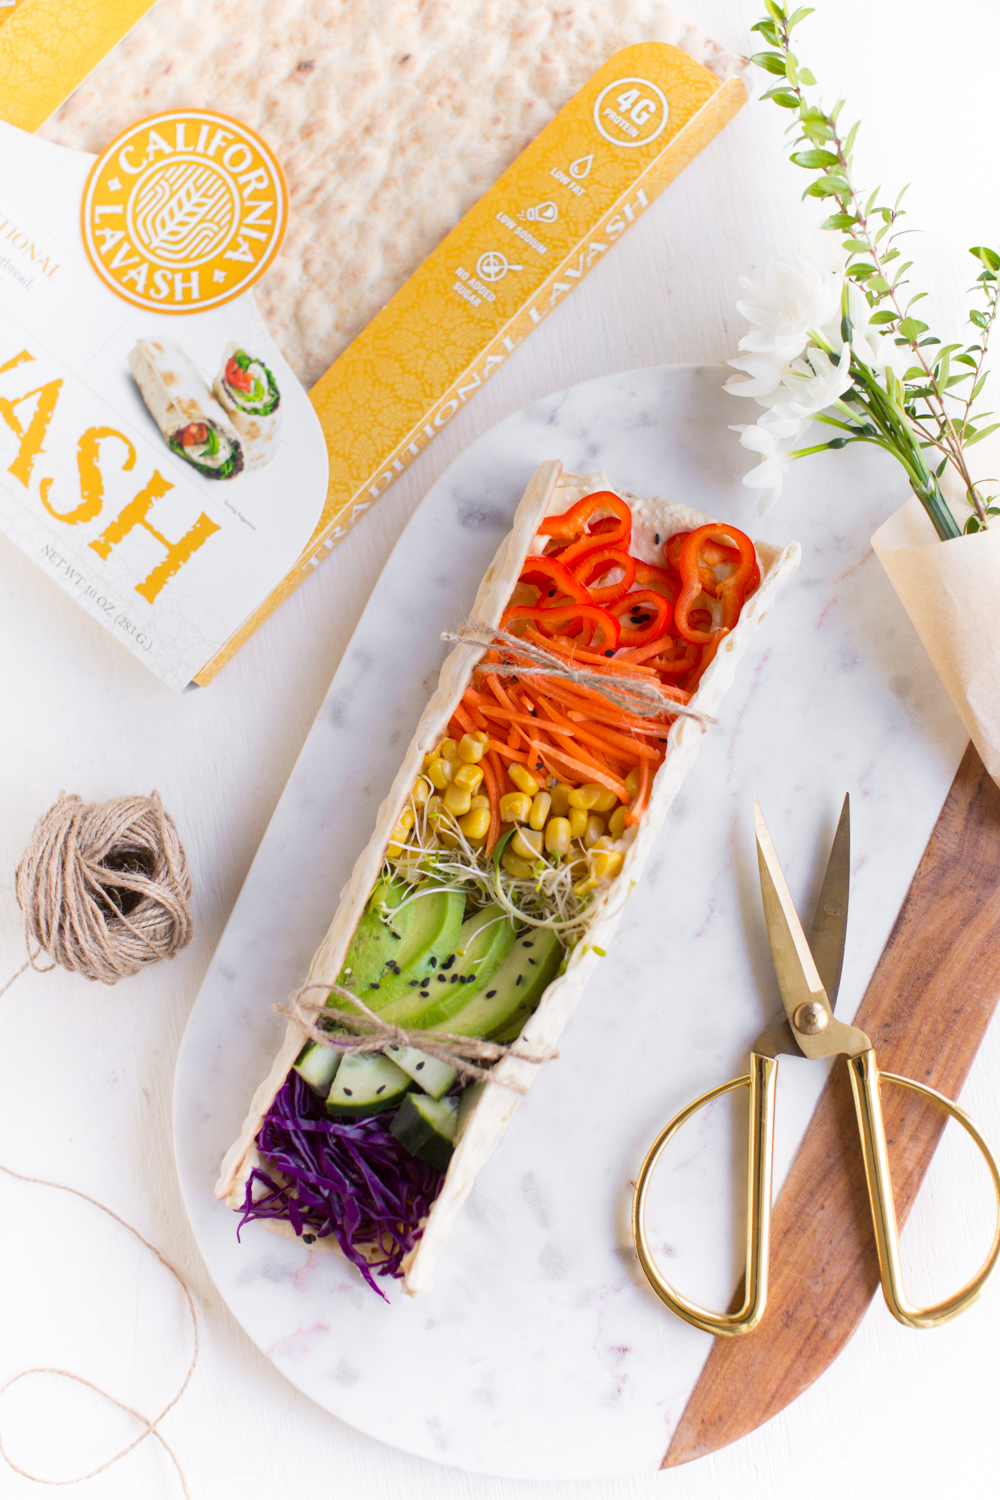 Rainbow Veggies | Lavash Wraps With Hummus & Colorful Vegetables | WorldofVegan.com | #lavash #rainbow #wrap #lunch #healthy #pride #colorful #recipe #worldofvegan